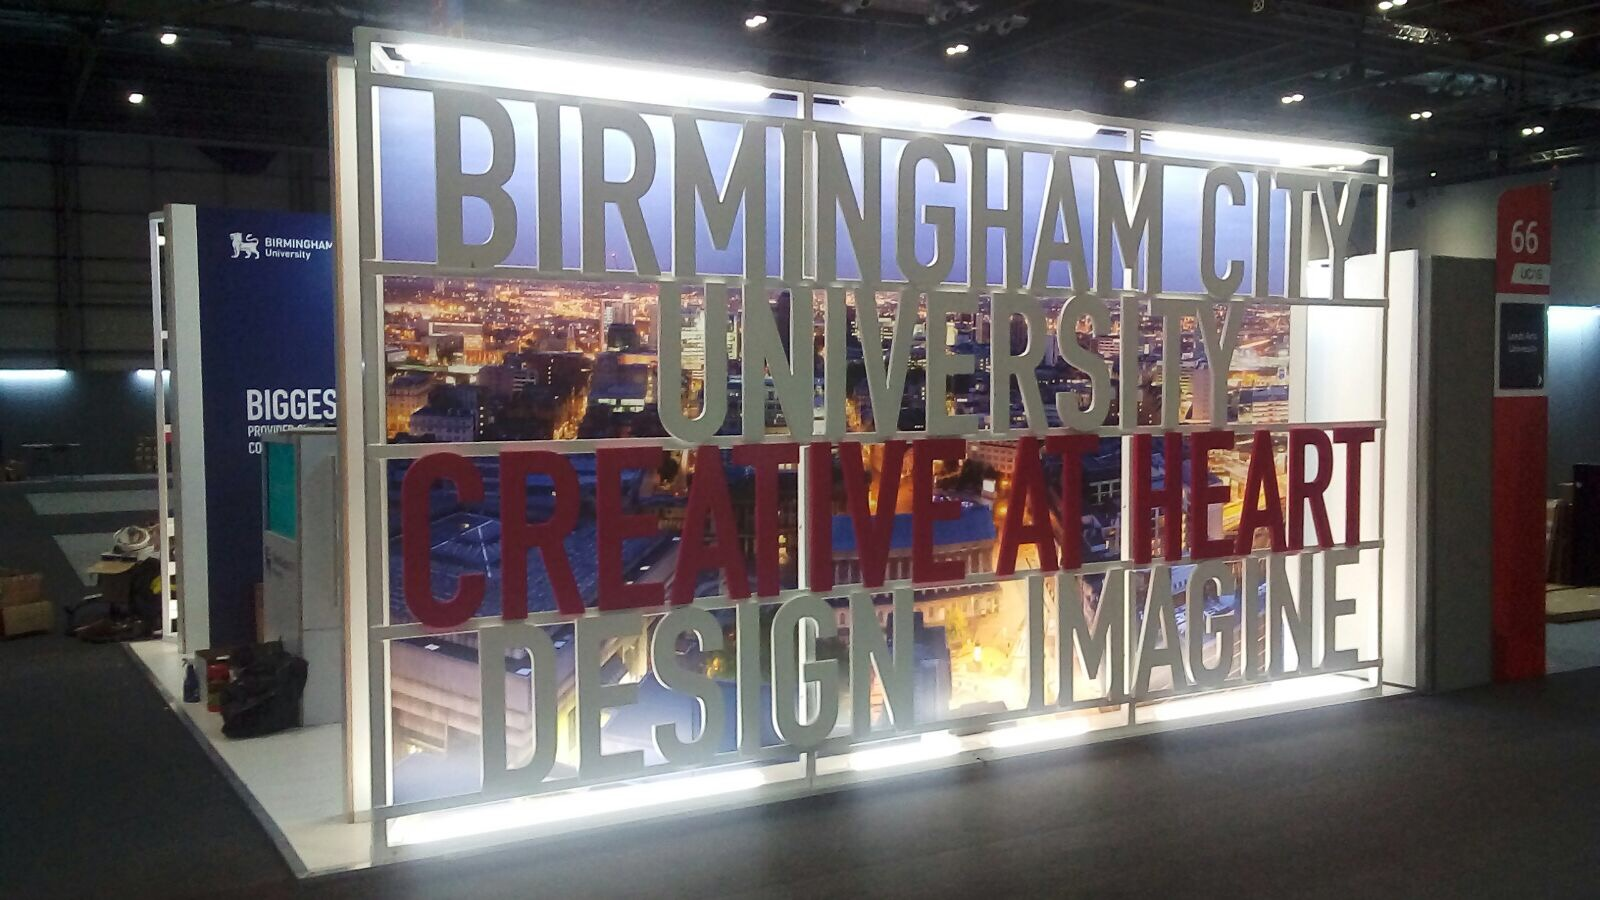 Exhibition Stand Design And Build Manchester : Plane structure major exhibition stand for birmingham city